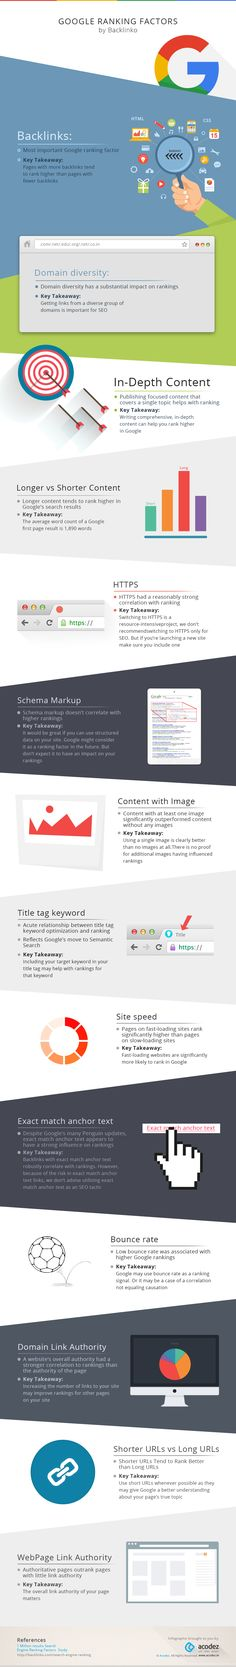 #Infographics: #Google Ranking Factors by @Backlinko